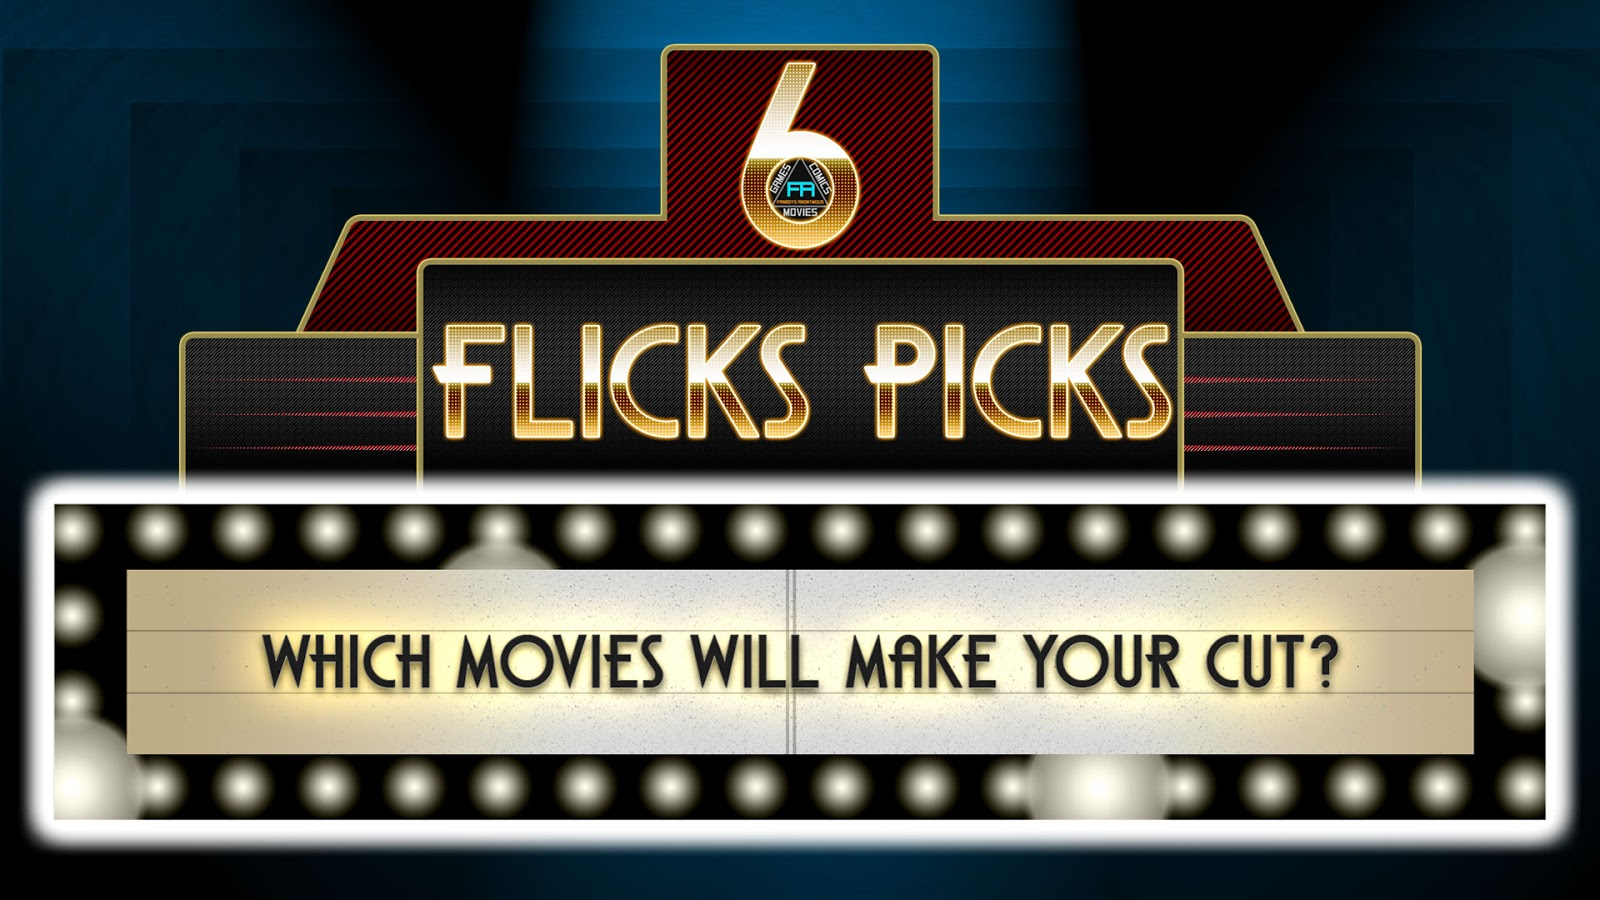 What movies are coming out July 2018 6 Flicks Picks